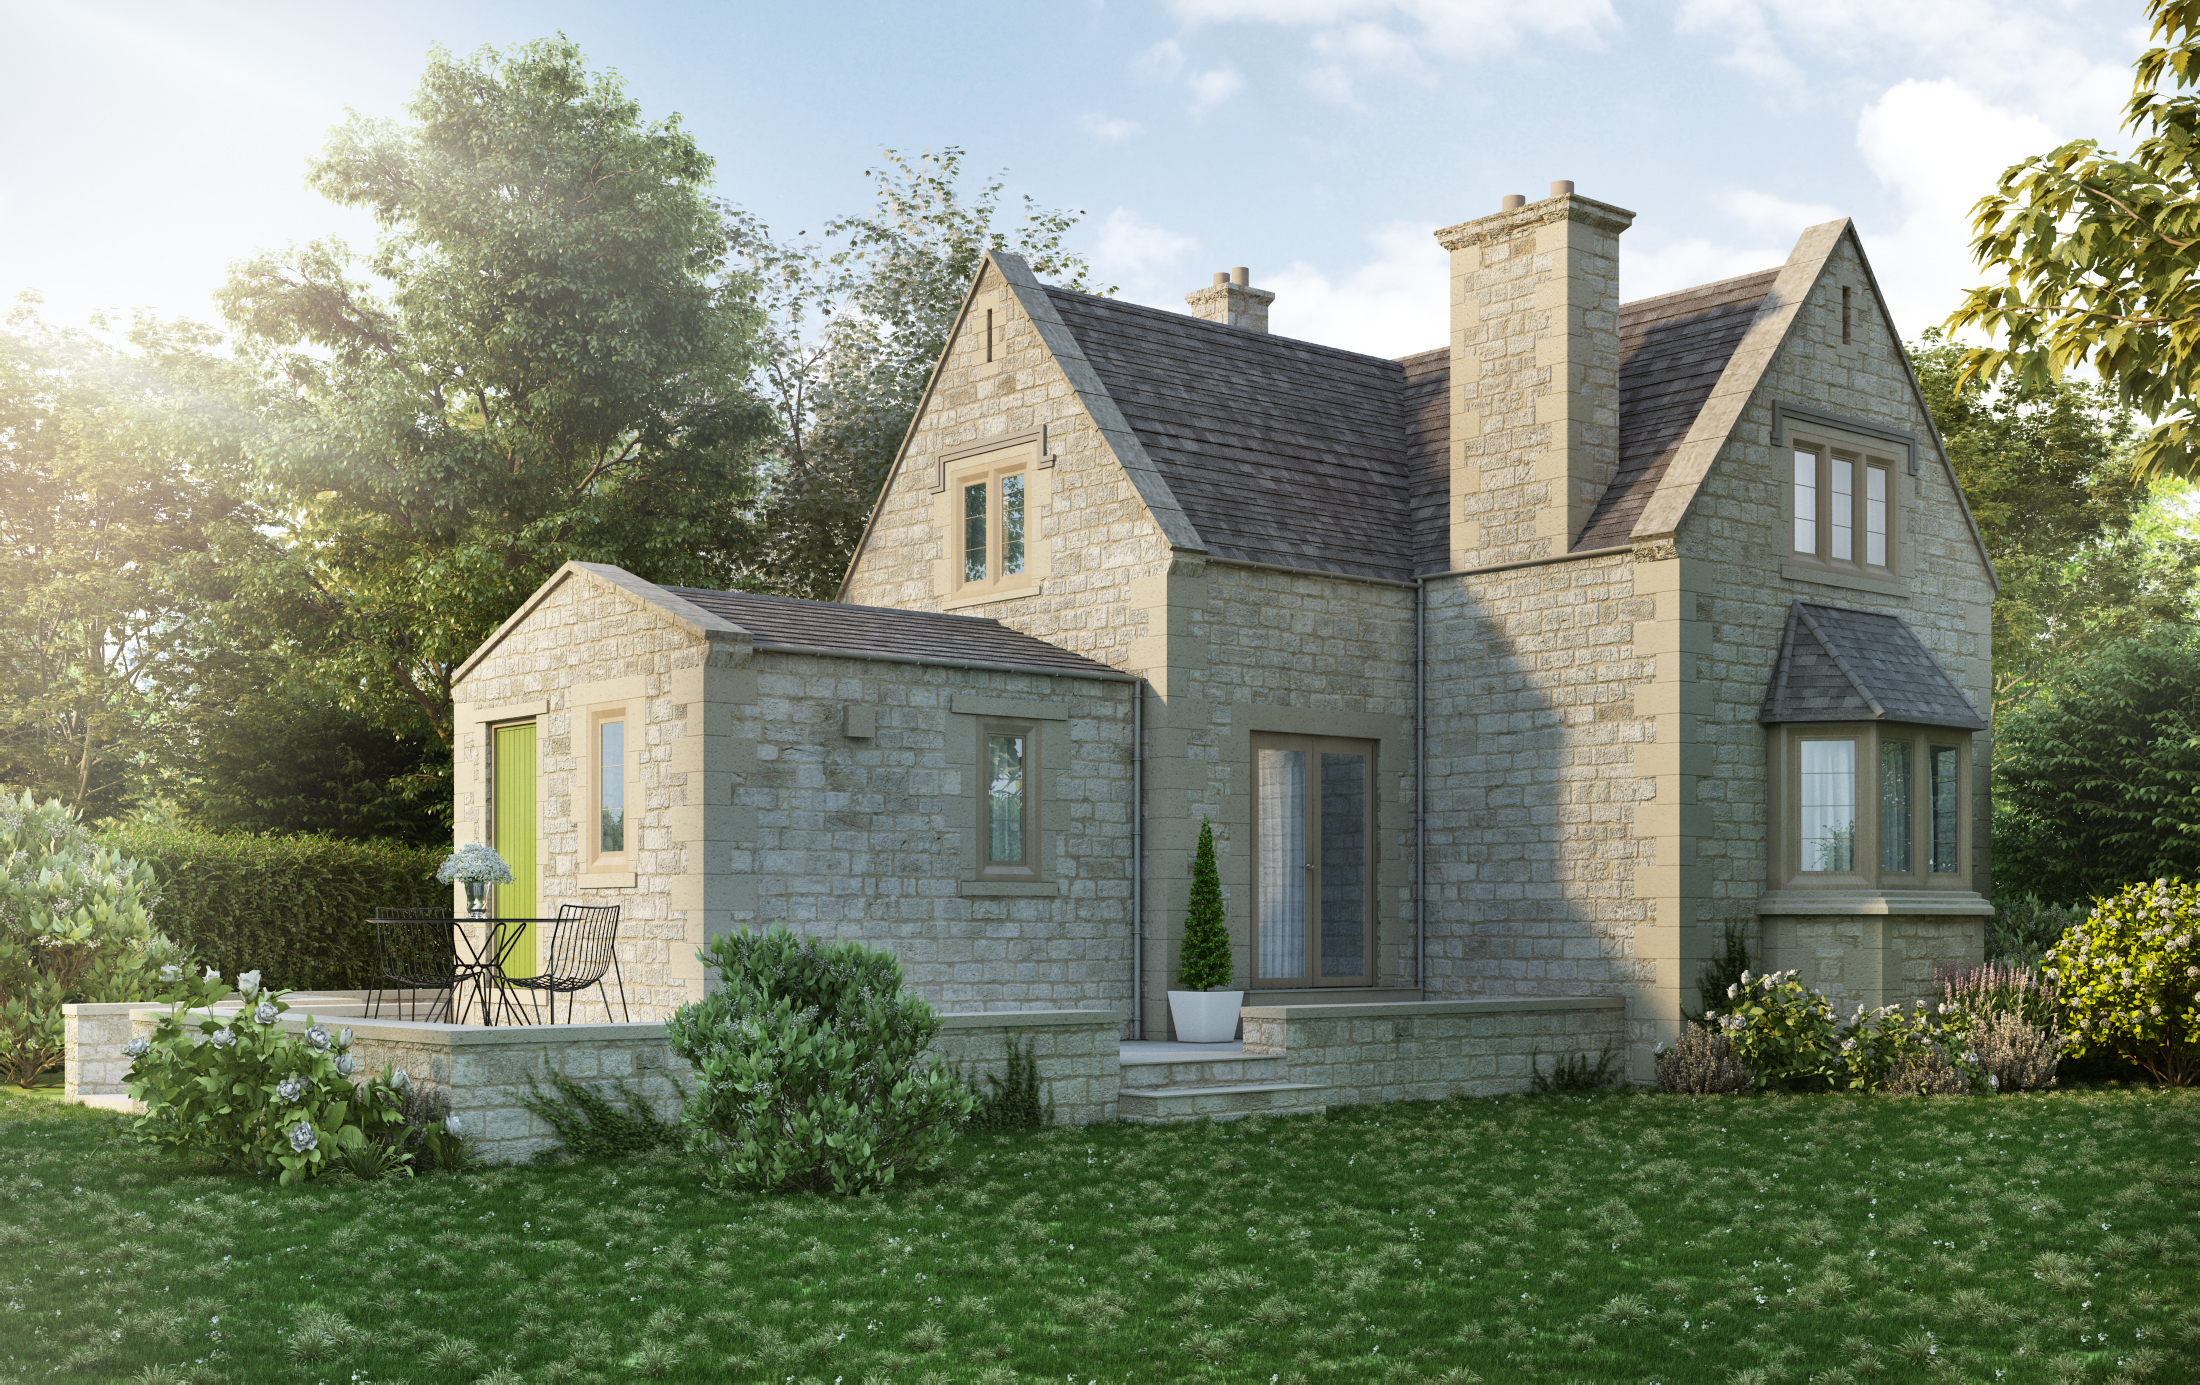 Extension to Historical Building, Cotswolds